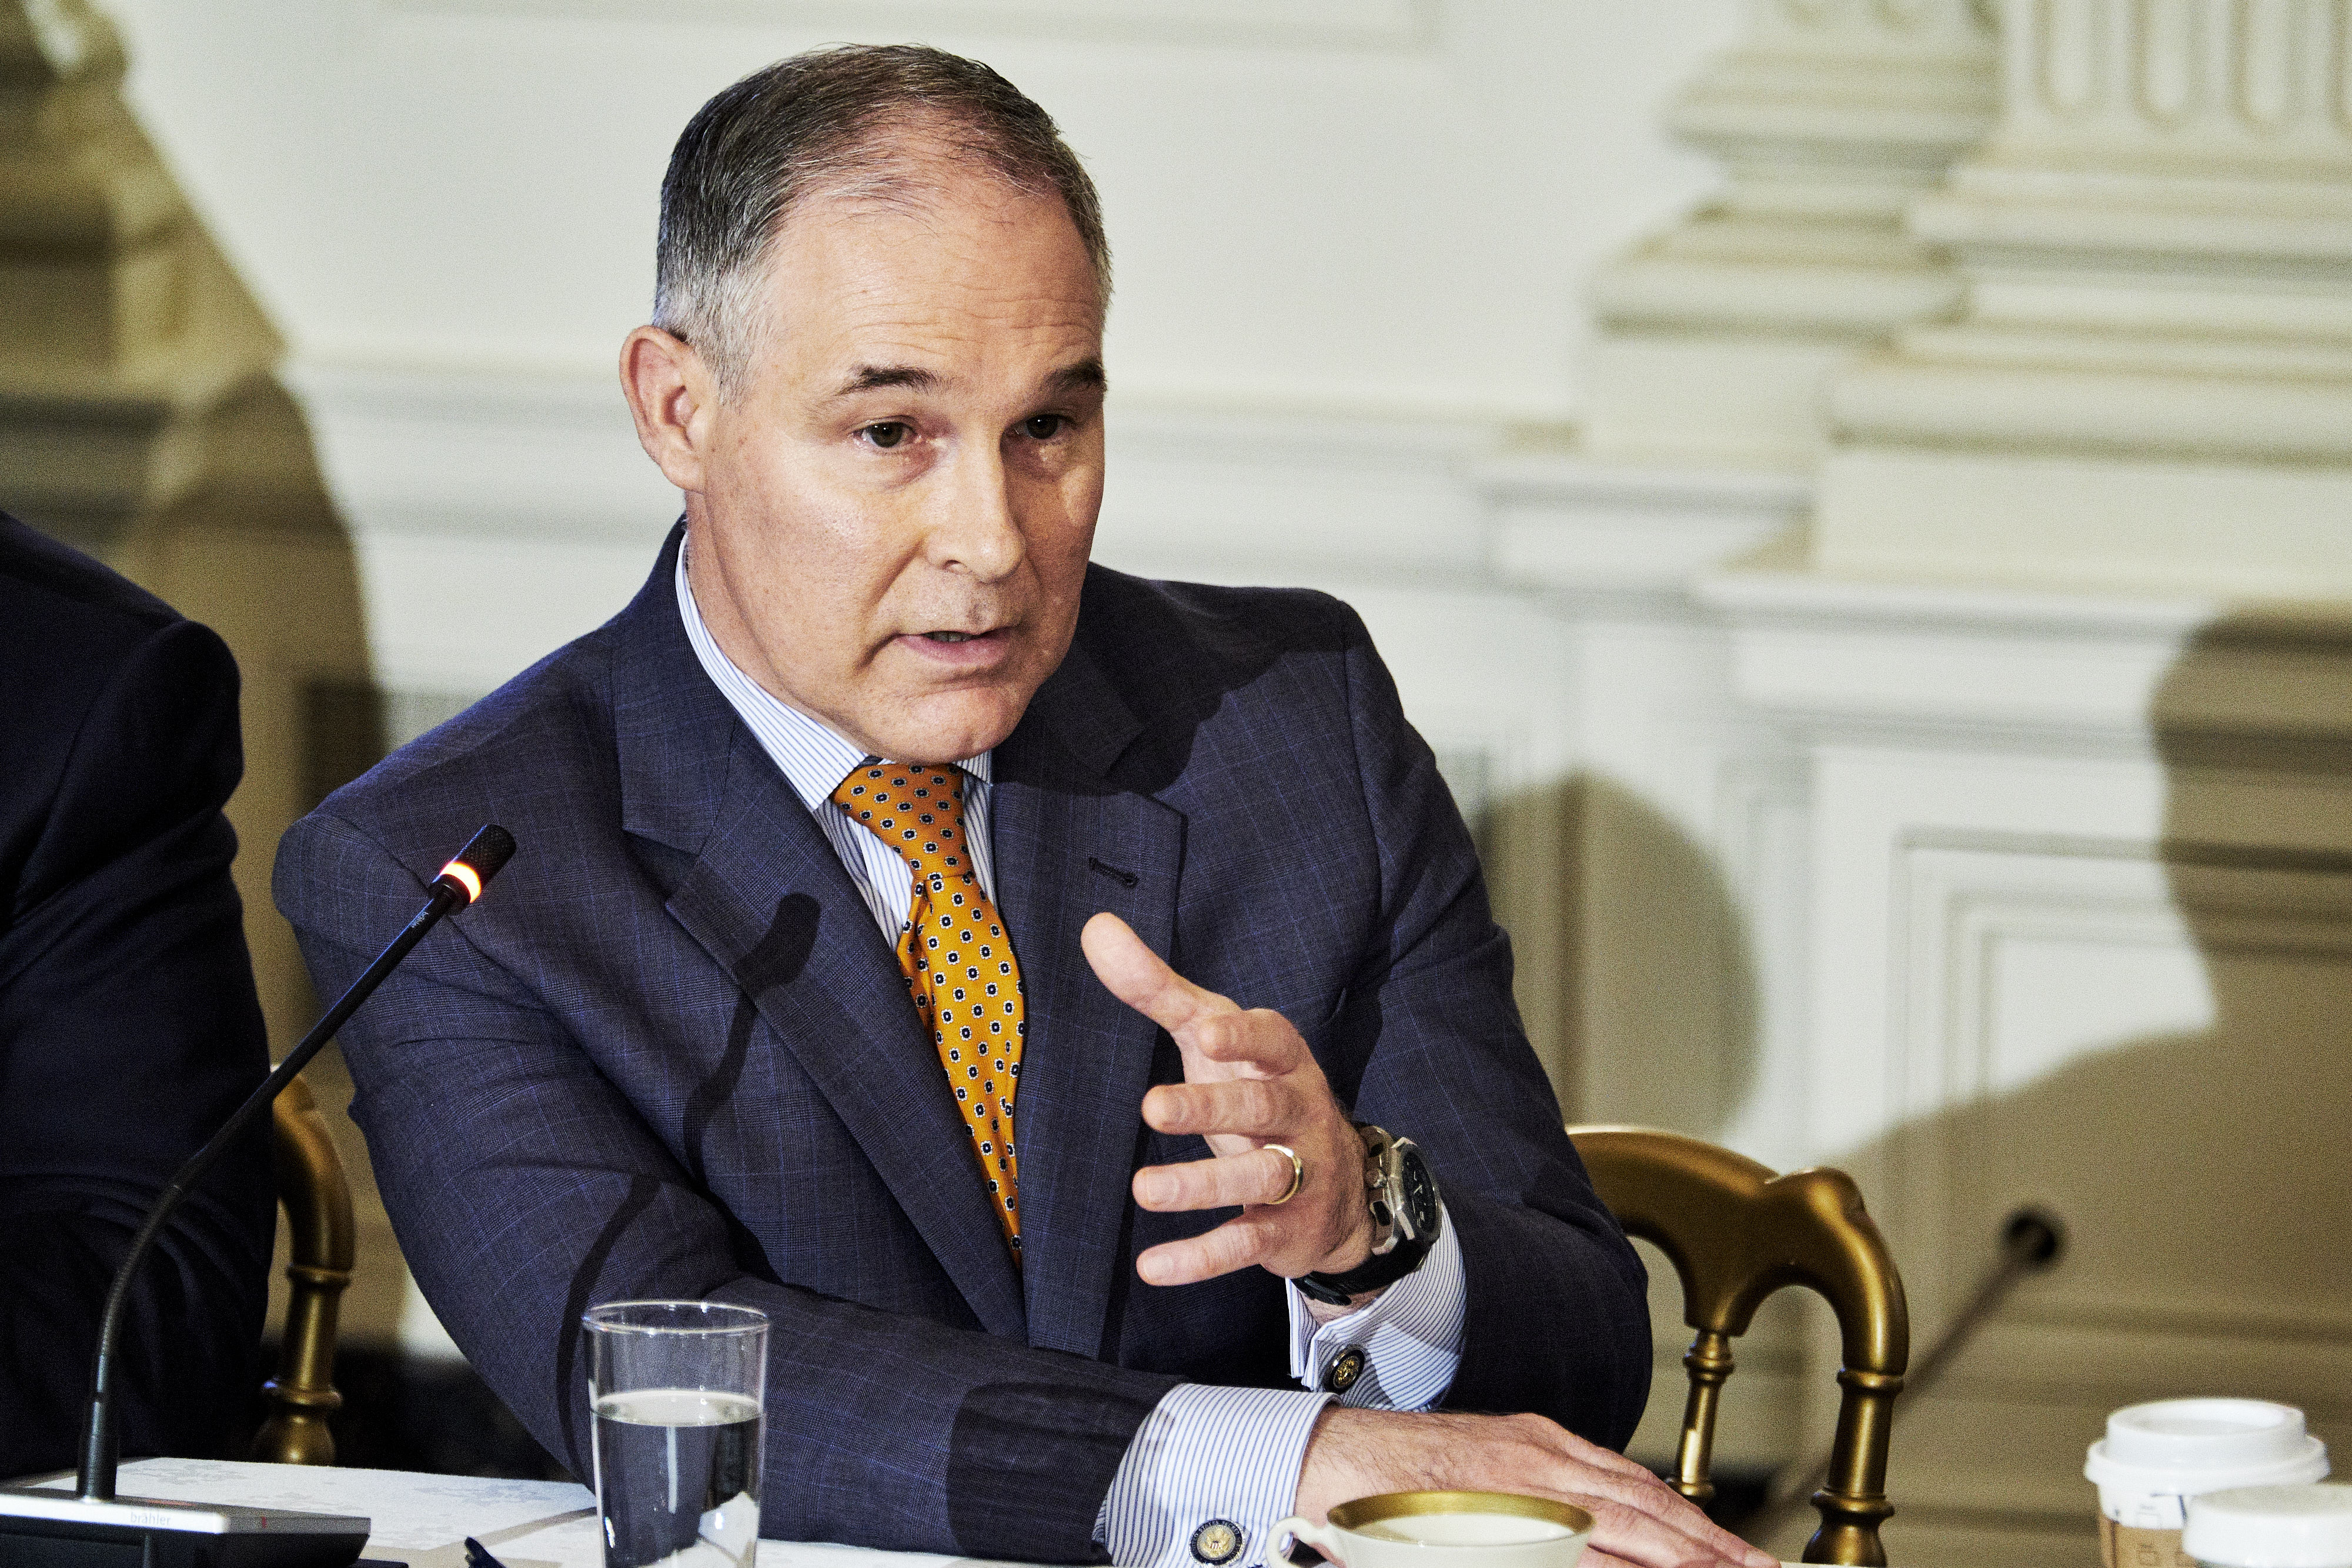 Scott Pruitt, administrator of the Environmental Protection Agency (EPA), speaks during an infrastructure initiative meeting with U.S. President Donald Trump, not pictured, at the State Dining Room of the White House in Washington, D.C., U.S., on Monday, Feb. 12, 2018.